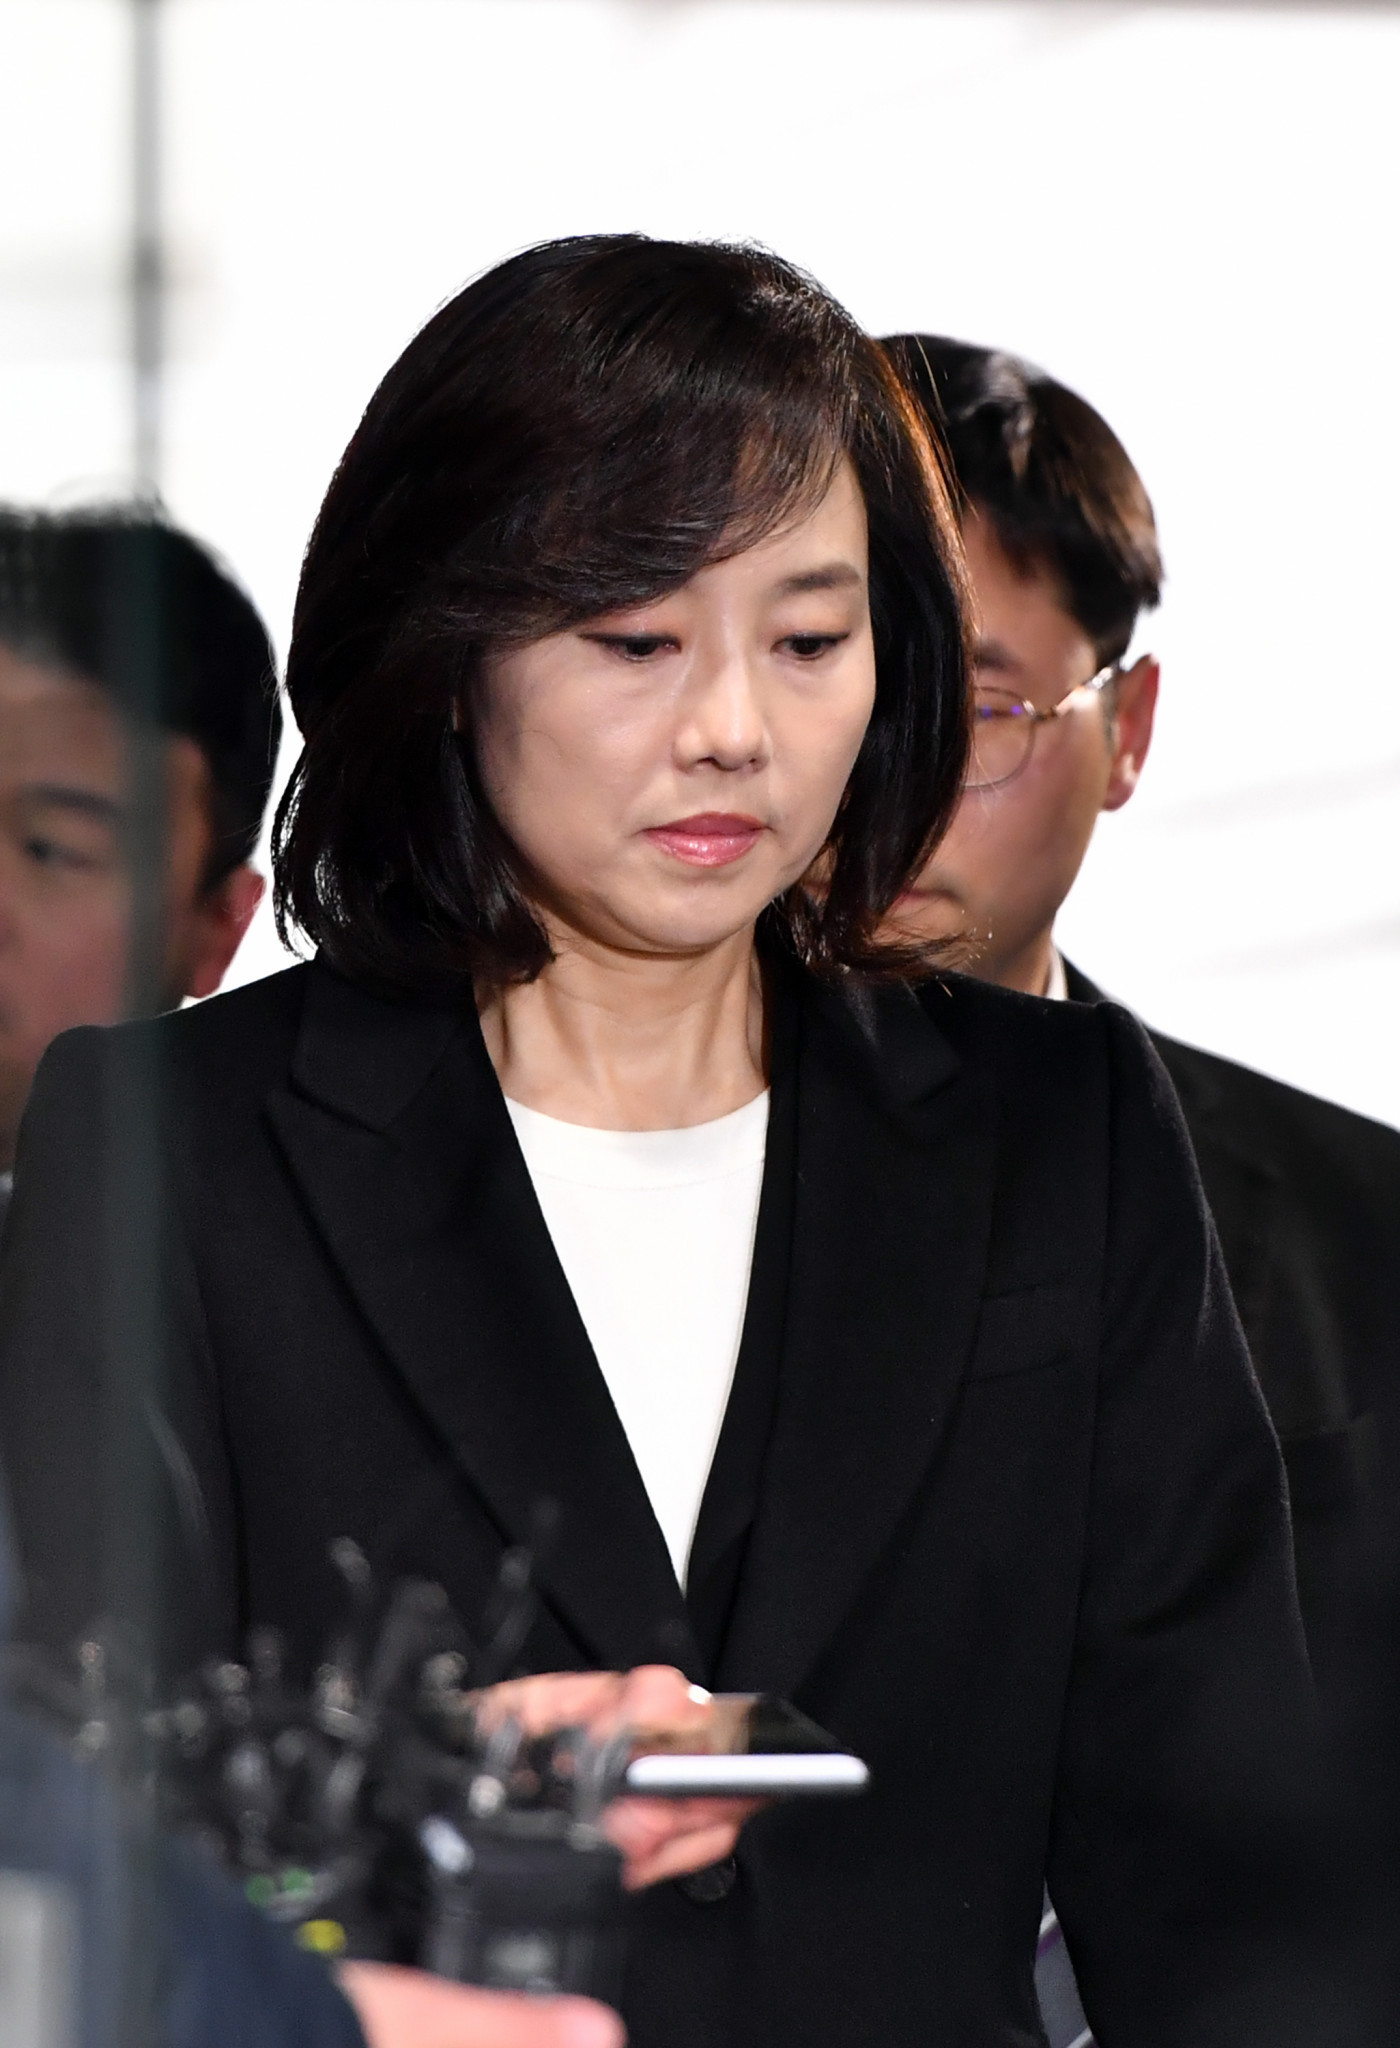 The appeals court convicted Cho Yoon-sun of involvement in the process of creating and managing the list of artists ©Getty Images